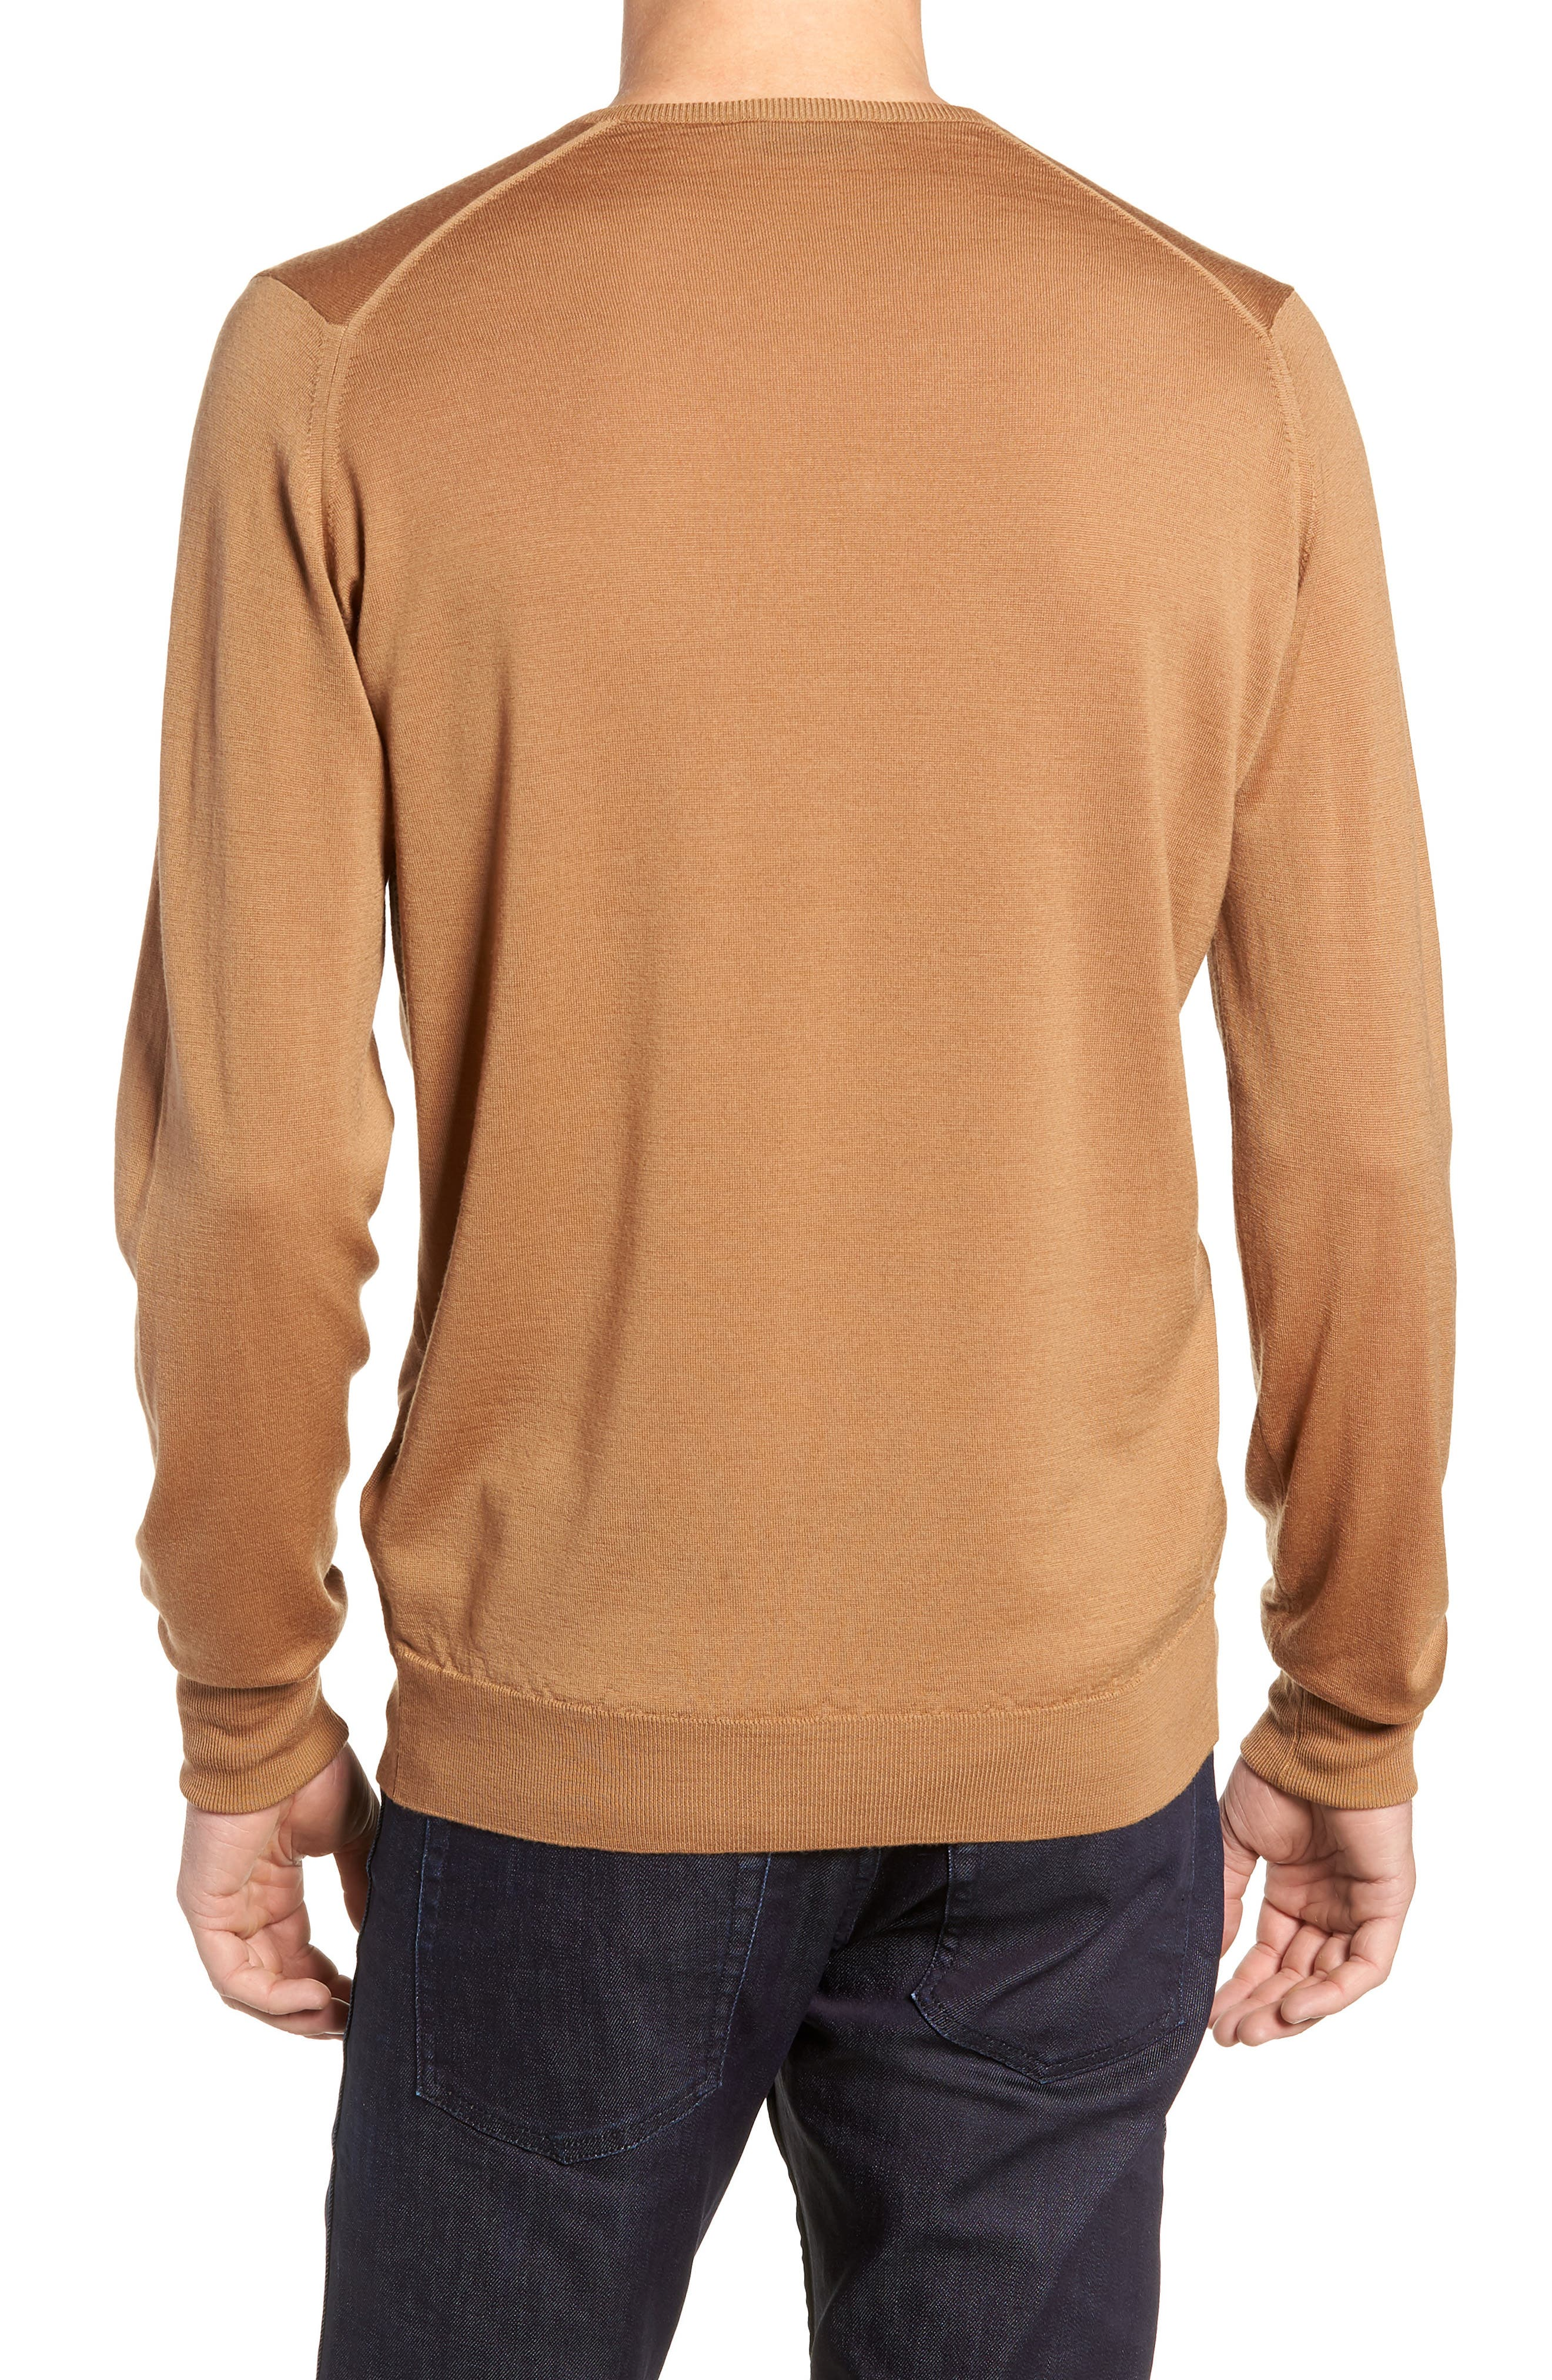 'Bobby' Easy Fit V Neck Wool Sweater,                             Alternate thumbnail 2, color,                             251